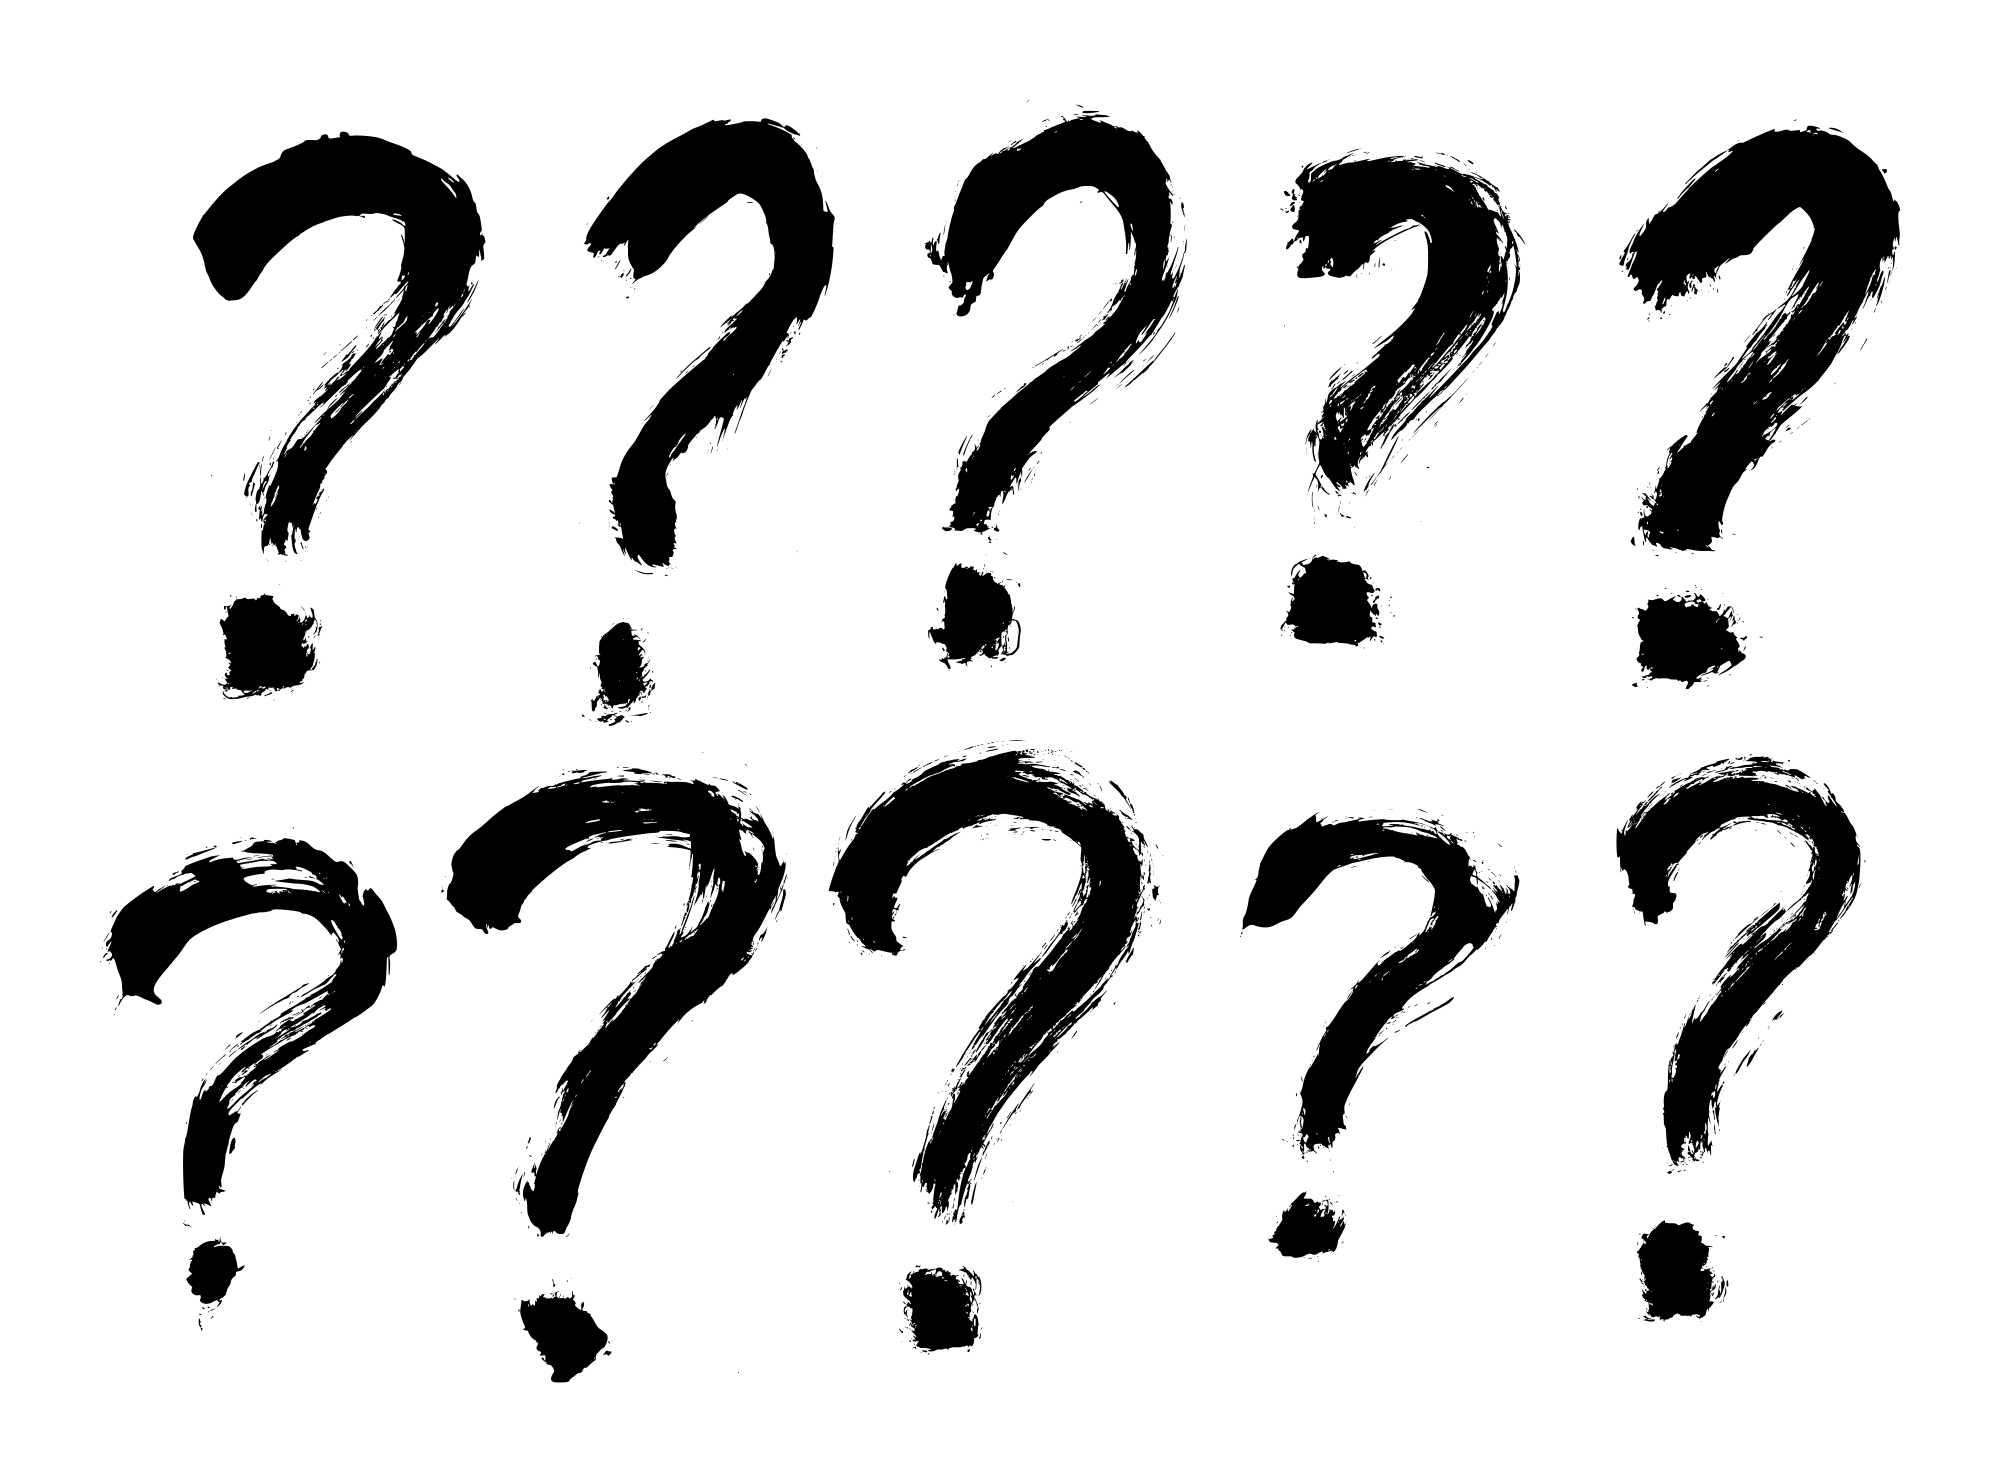 10 Grunge Question Mark Png Transparent Onlygfx Com Question Mark Wedding Gifts For Couples Unique Wedding Gifts